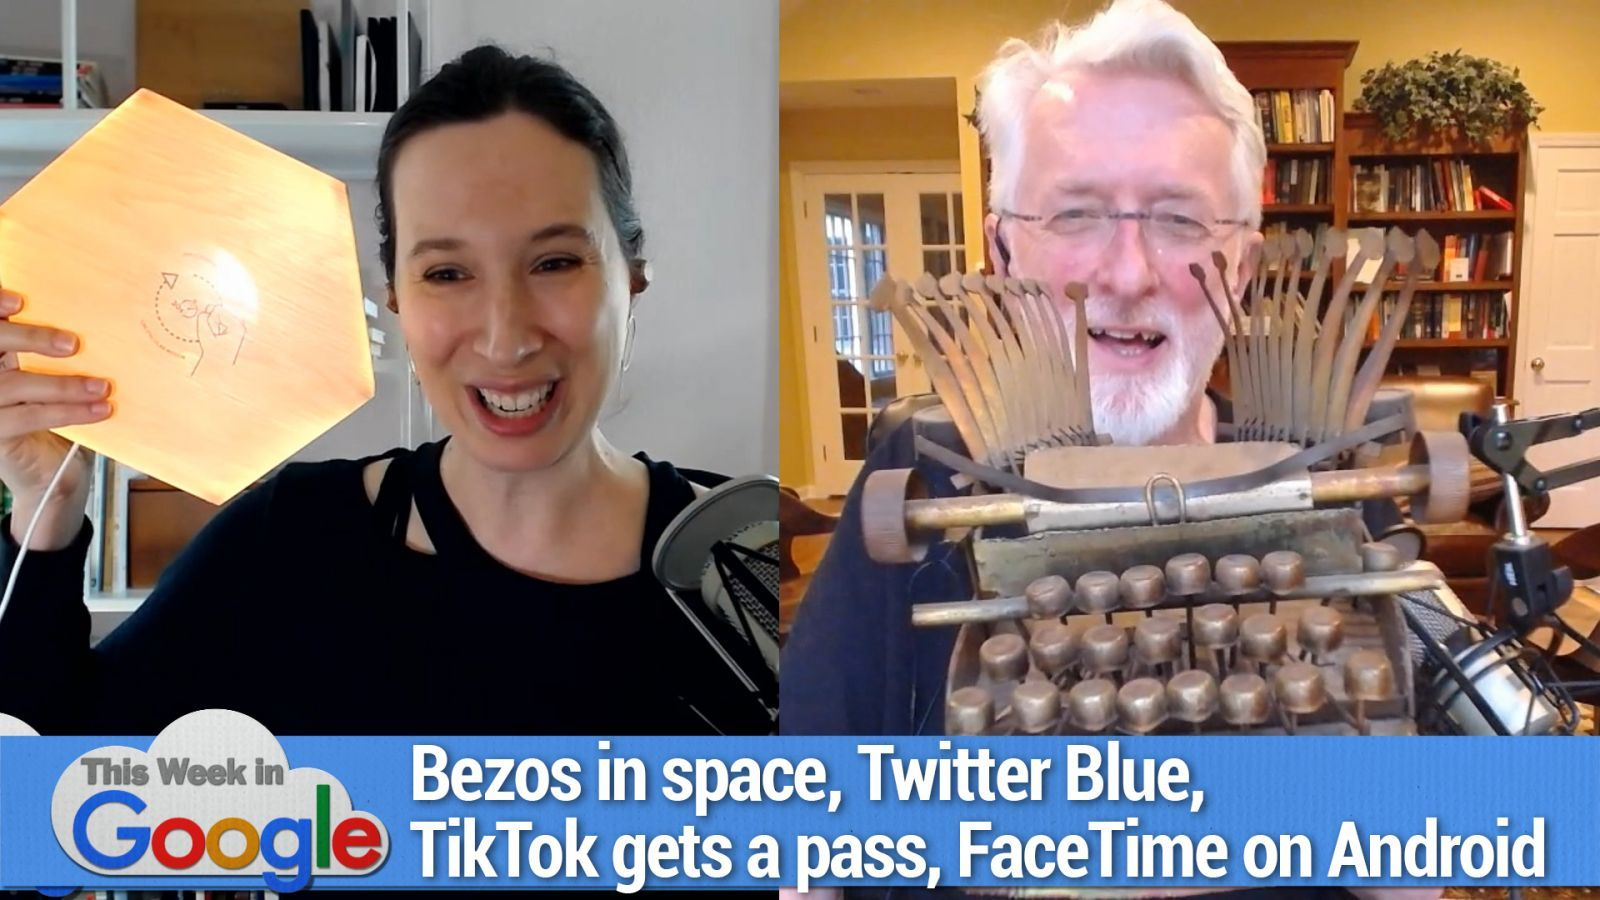 Bob is Unimpressed - Bezos in space, Twitter Blue, Biden gives TikTok a pass, FaceTime on Android